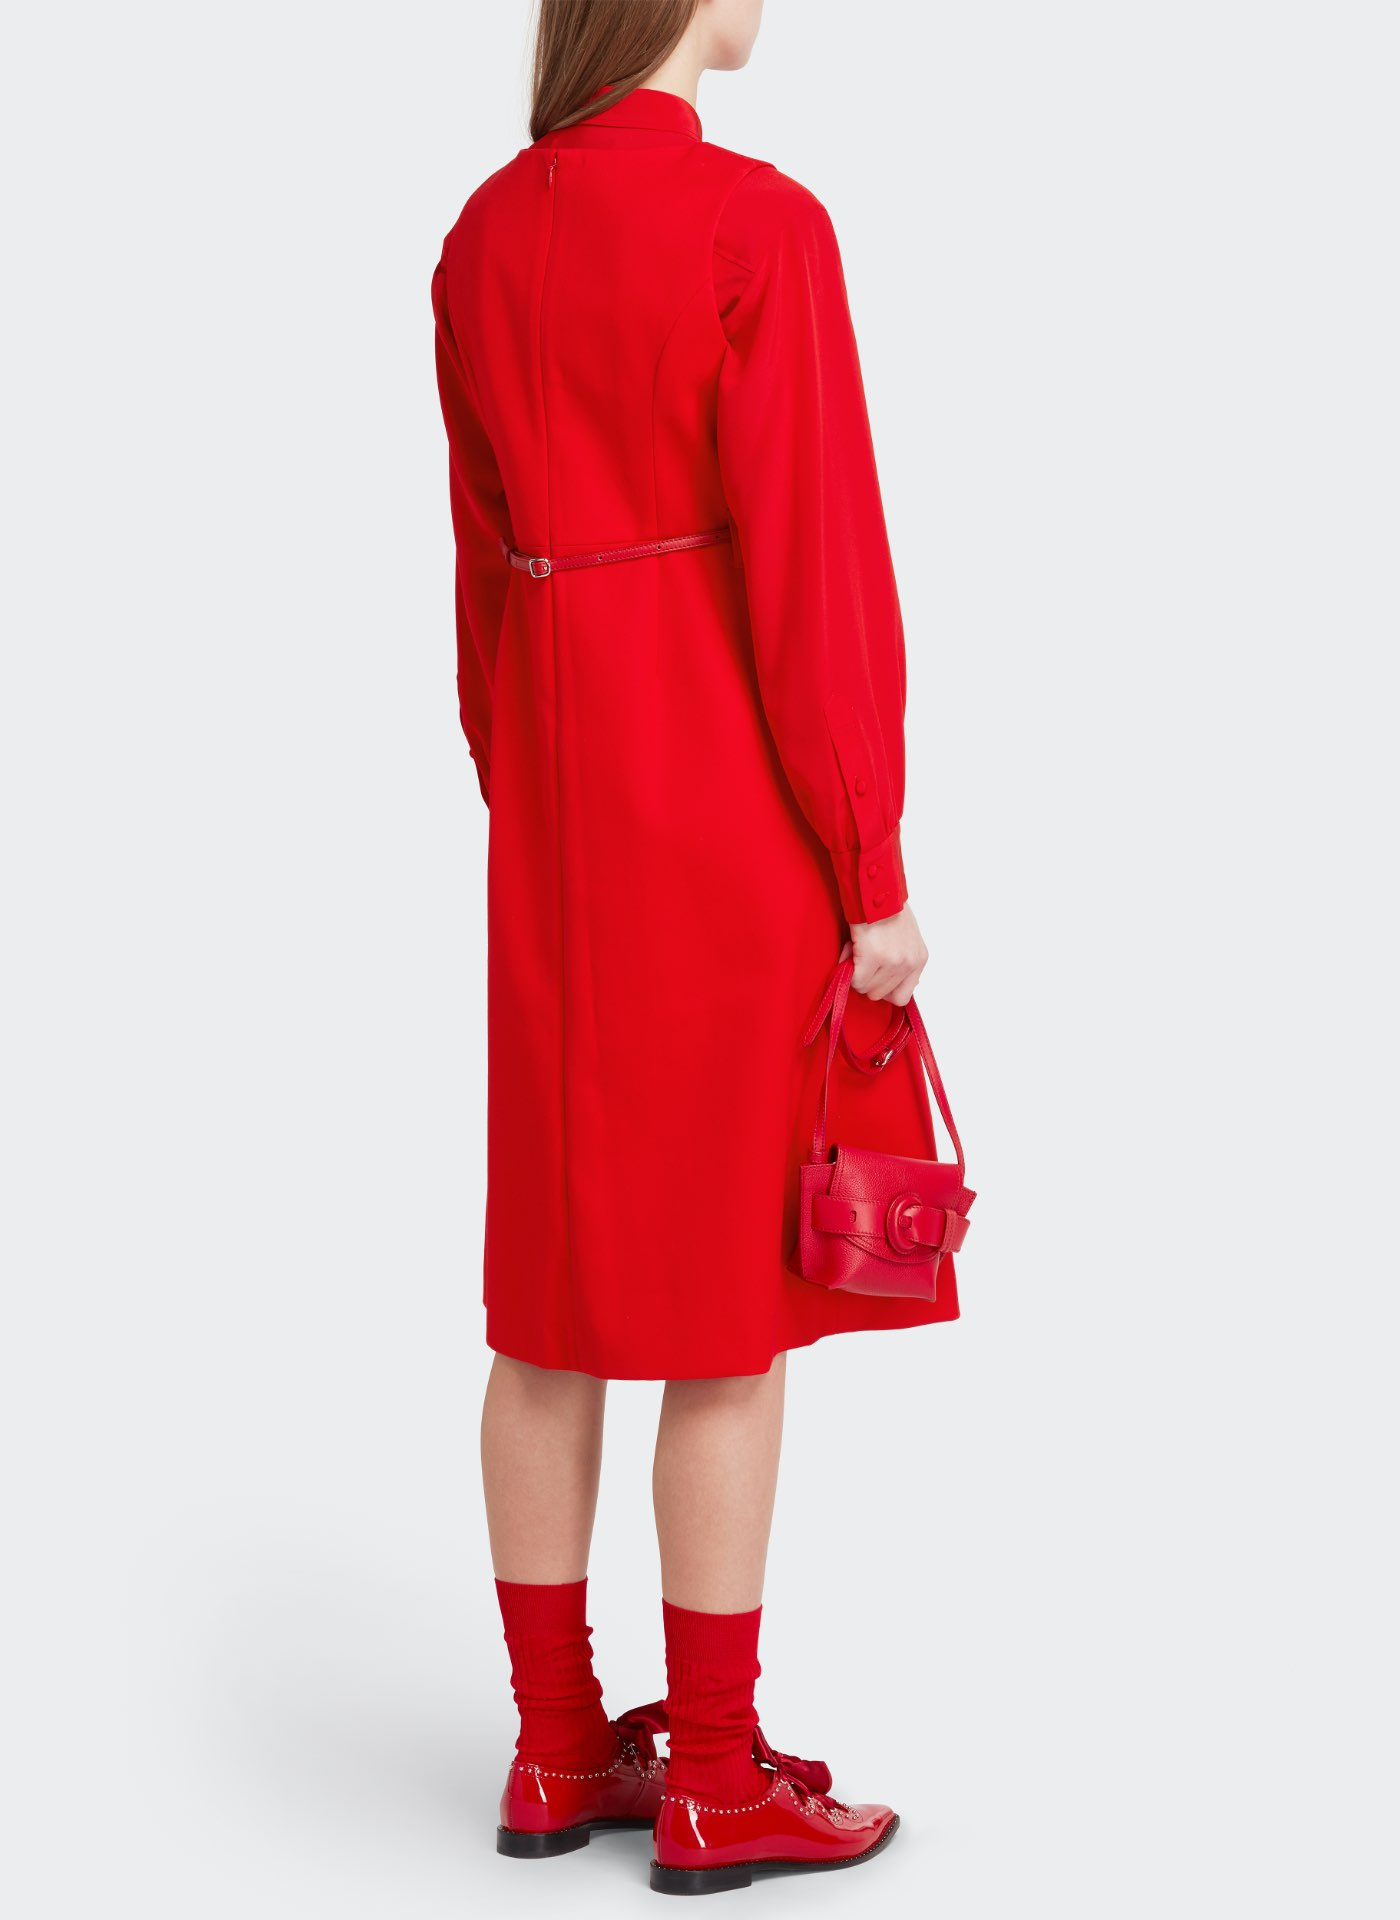 Womenswear model wearing red J&M dress with a red leather bag, red shoes and red belt, red socks